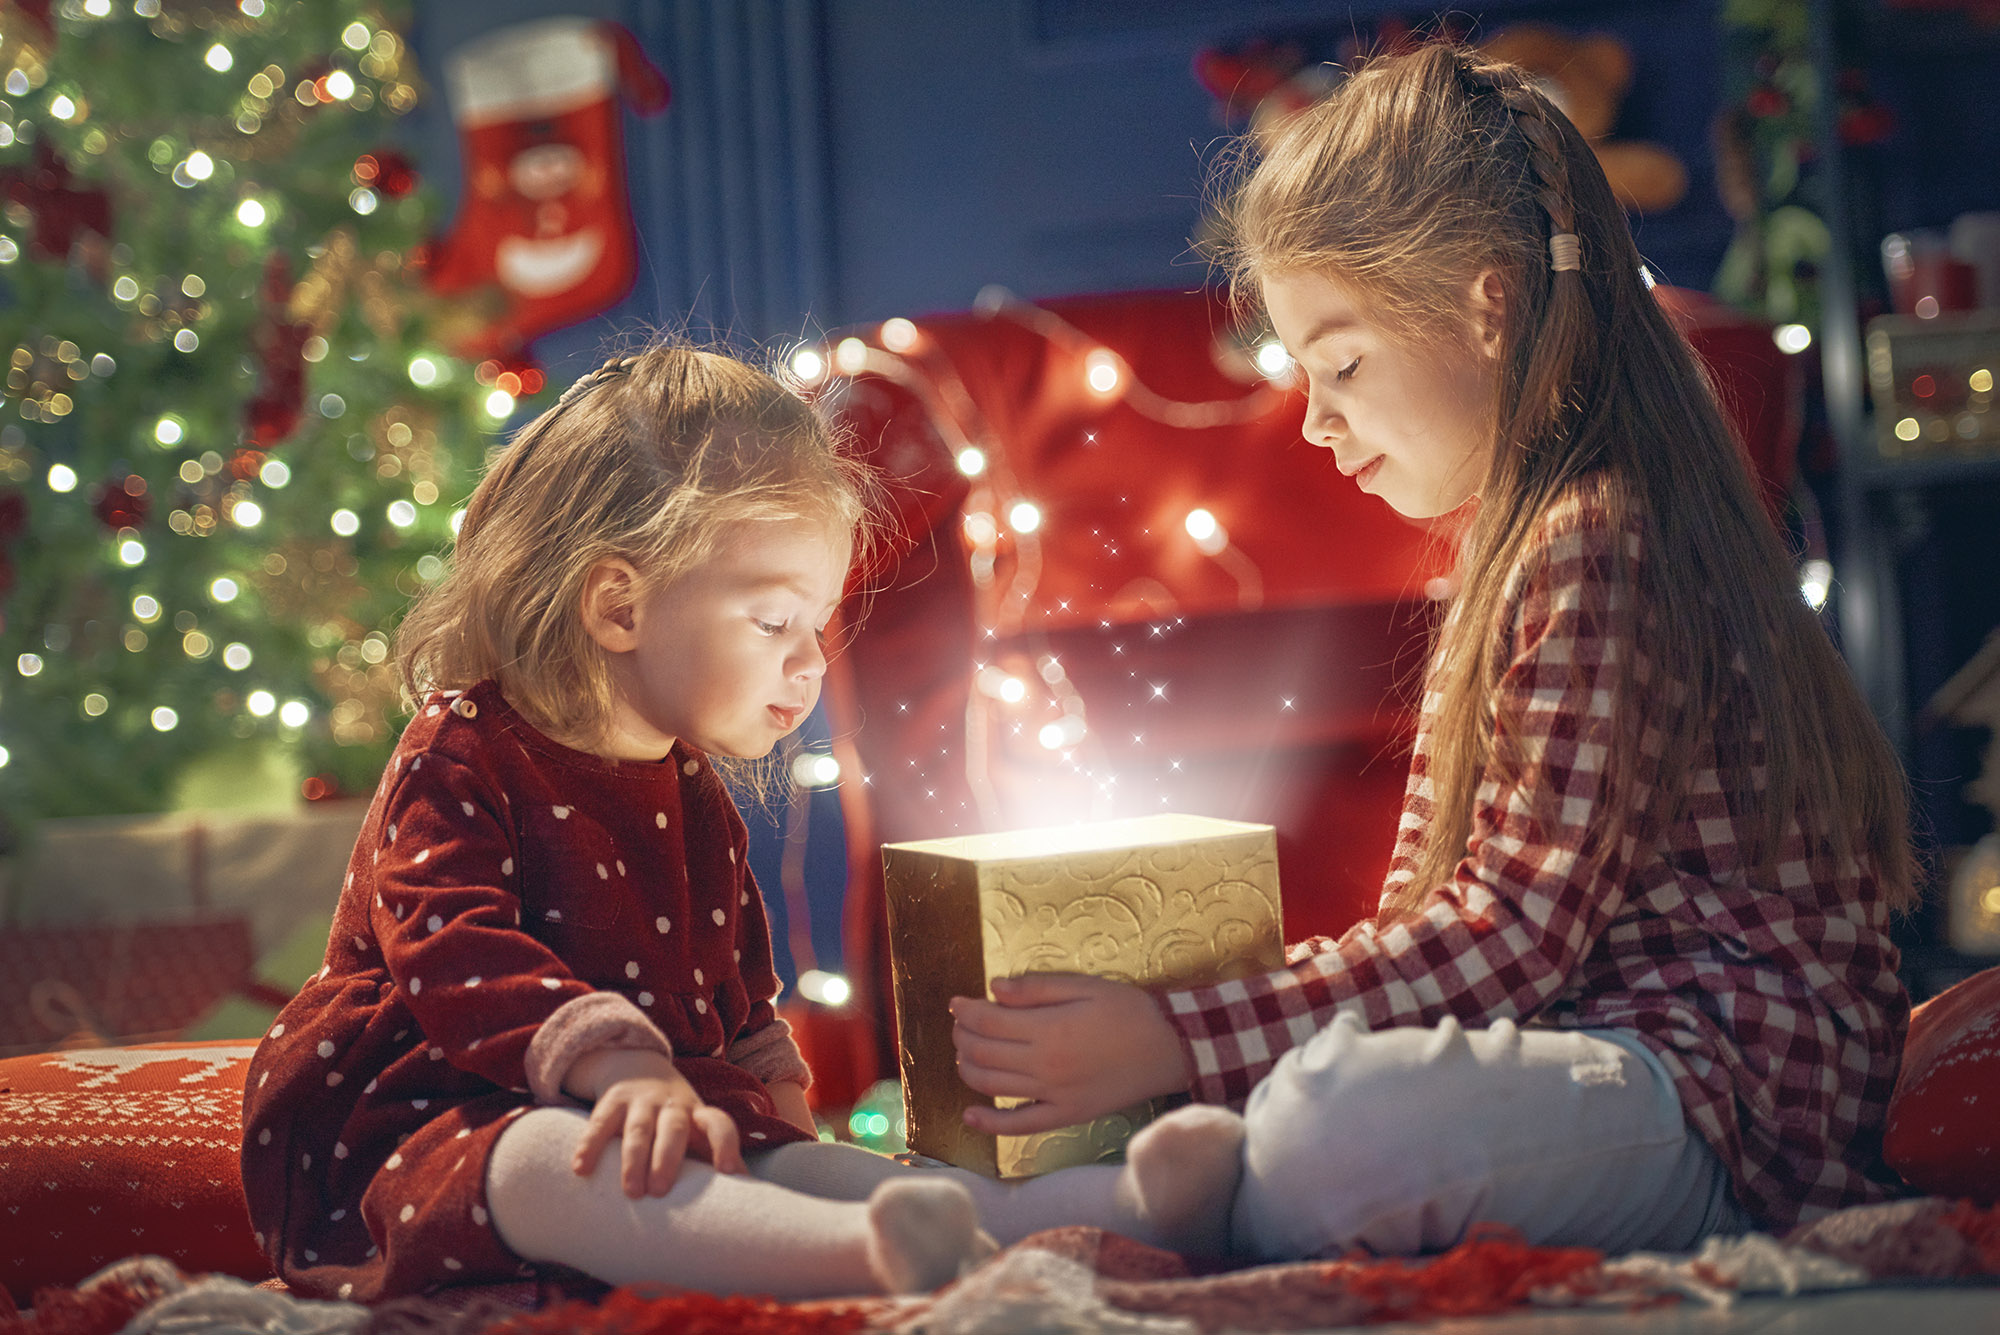 christmas children present glowing box light trick photography